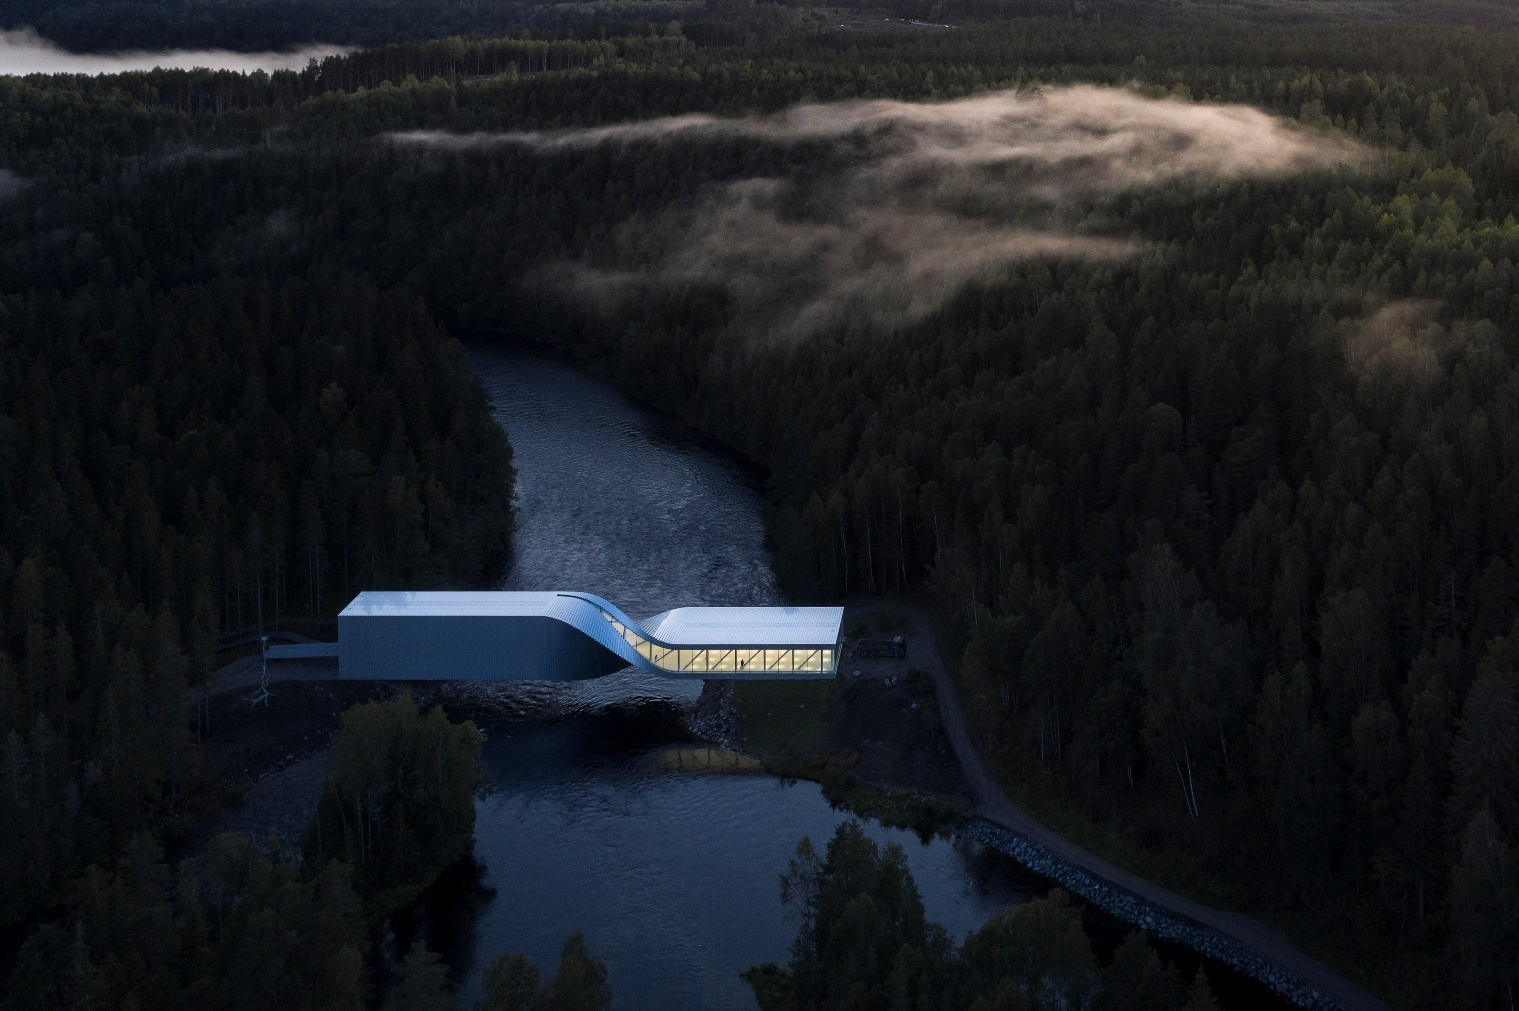 BIG's twisting museum bridges a river in Norway